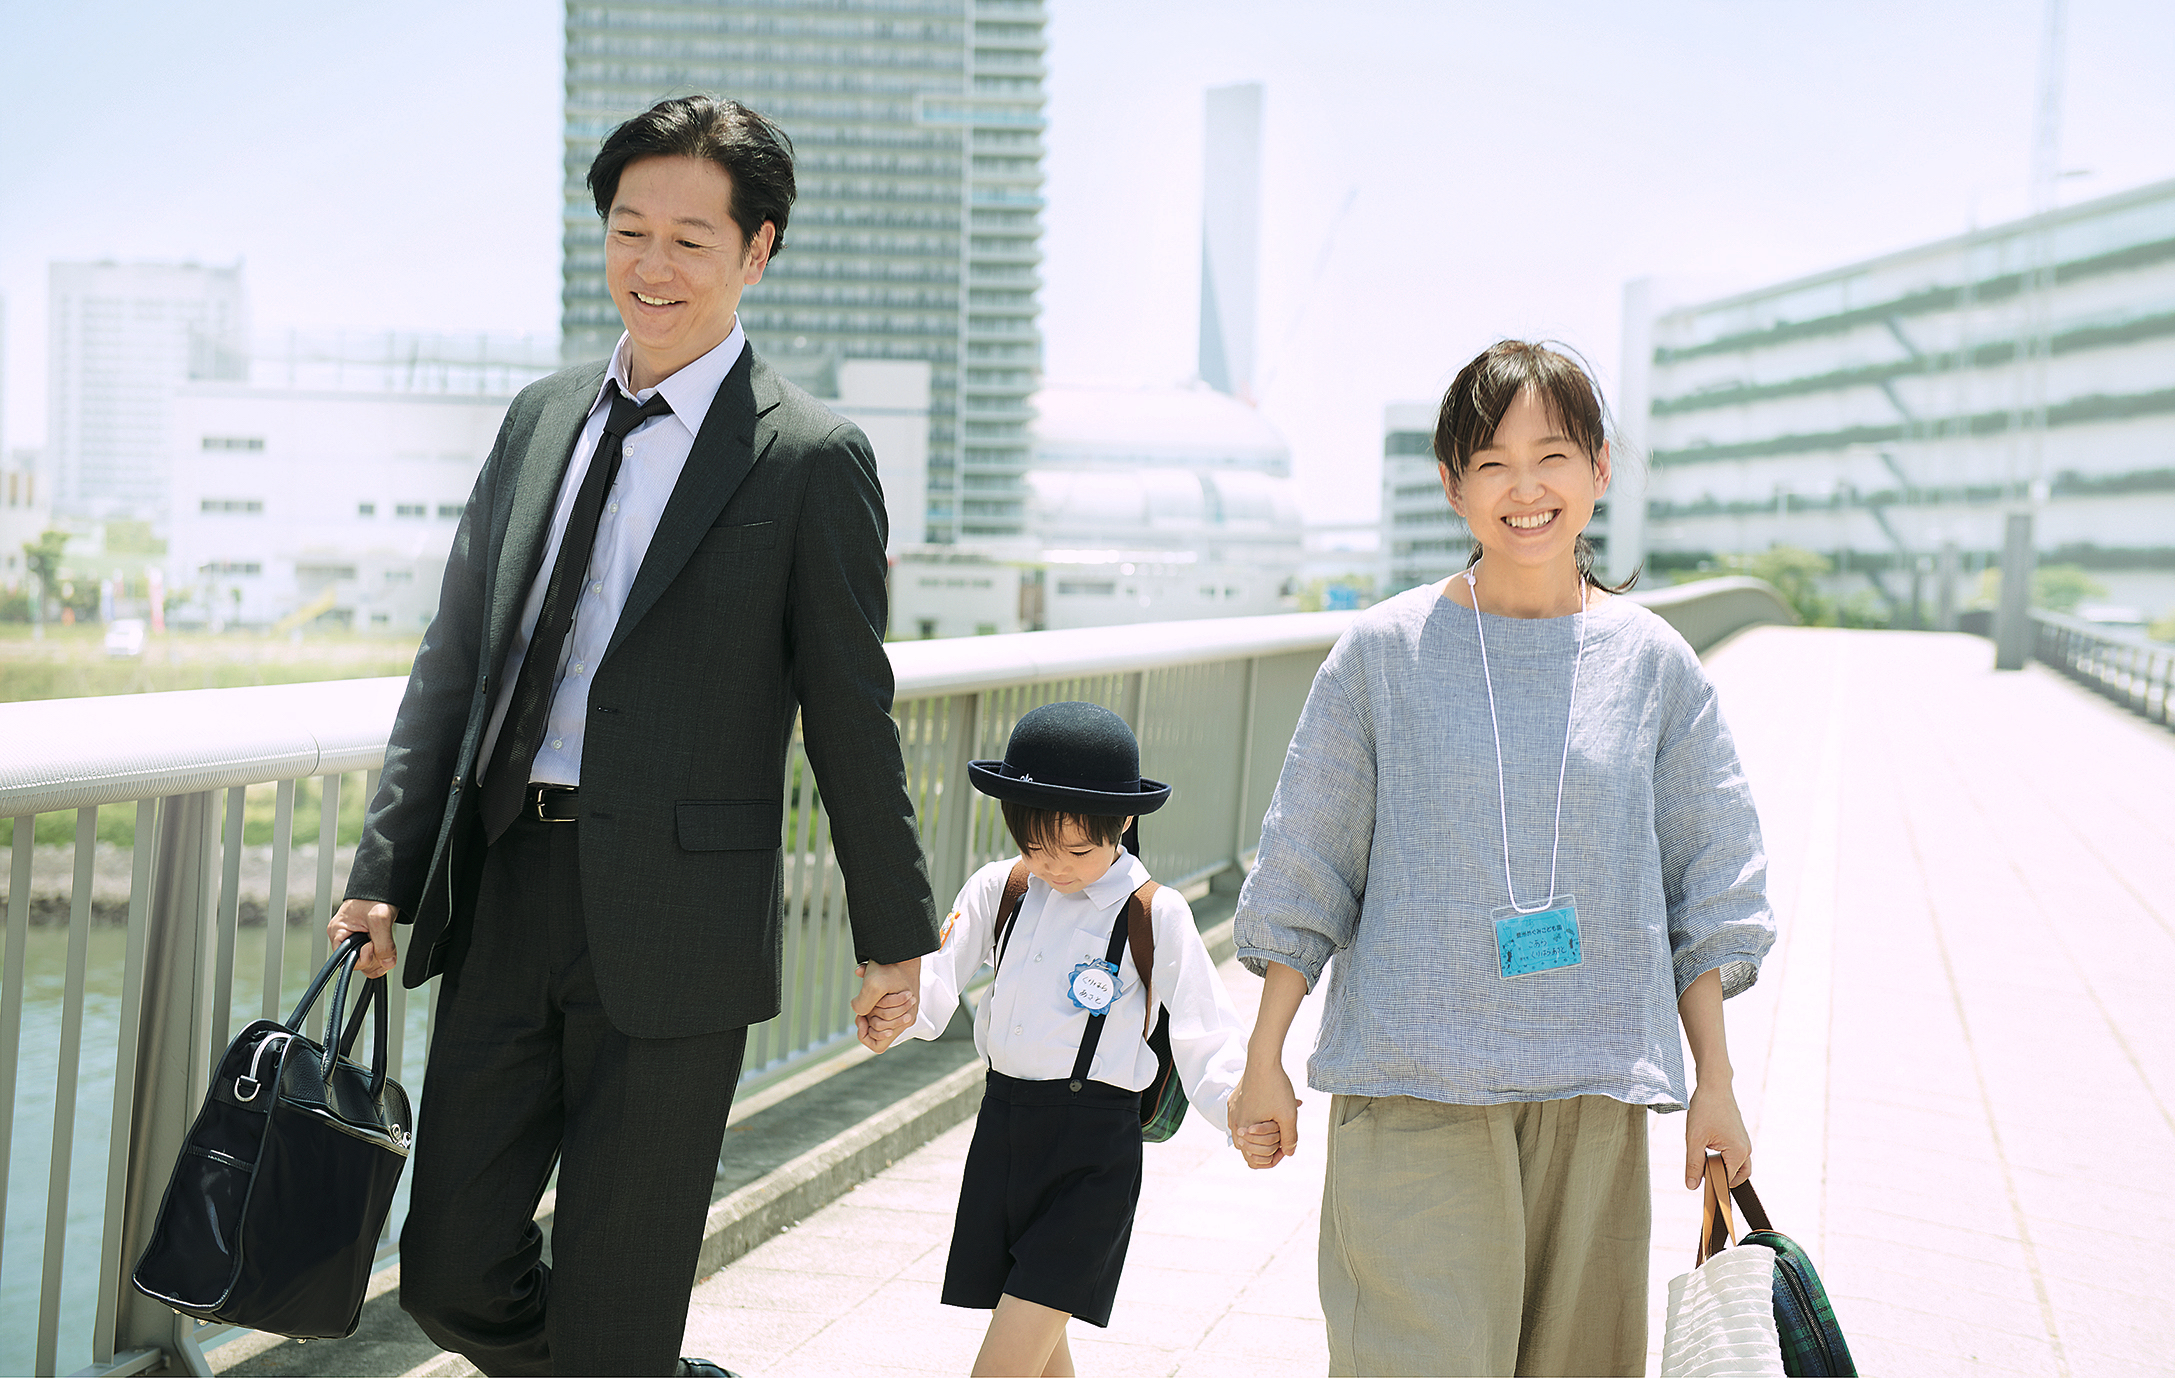 Family ties: An affluent couple face a crisis when they are contacted by the birth mother of their adopted son in Naomi Kawase's 'True Mothers.' | © 2020 'TRUE MOTHERS' FILM PARTNERS